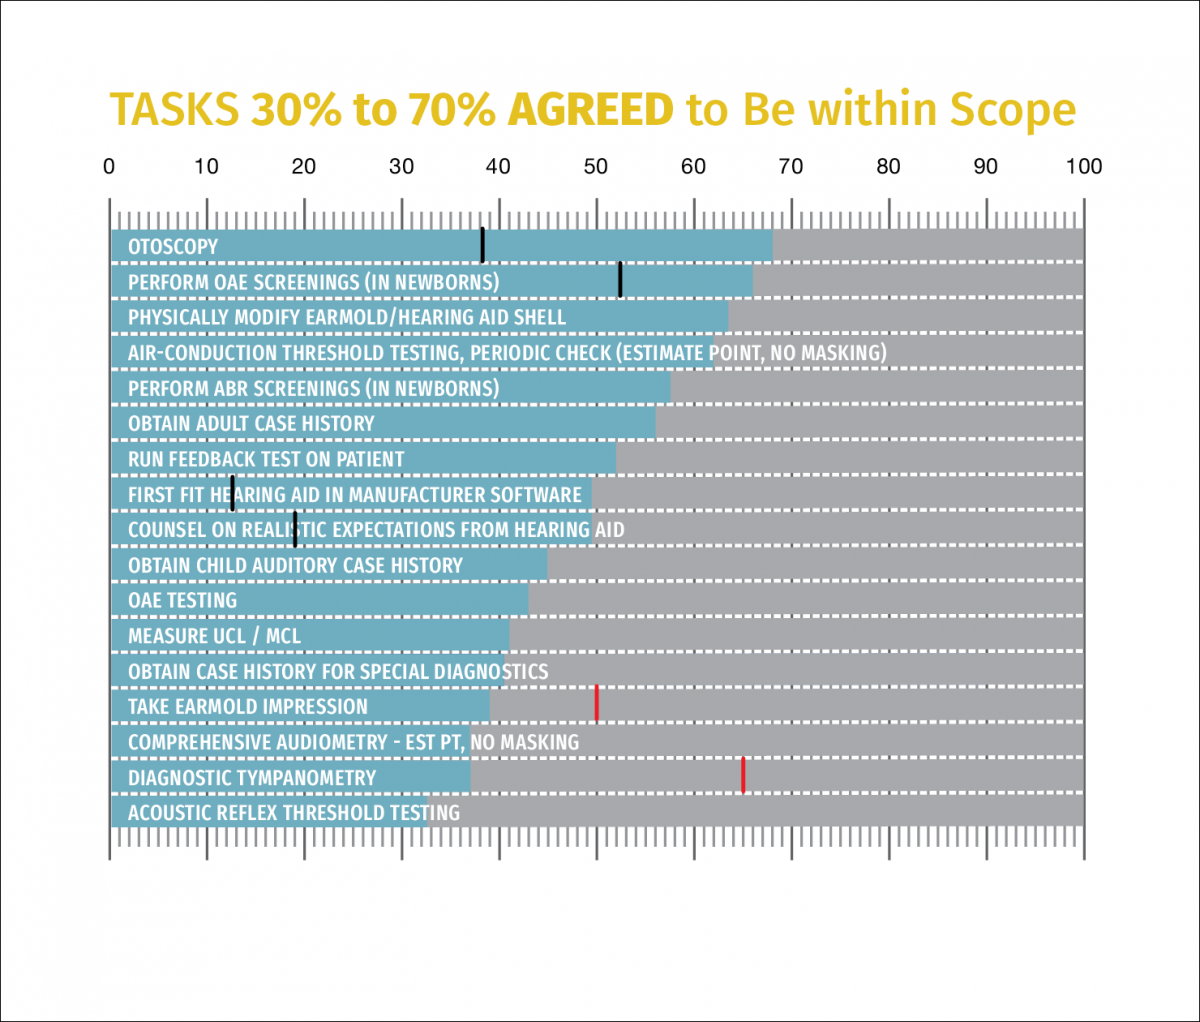 FIGURE 2. Percentage of respondents who agree a given task is appropriate to be within the scope of practice of an audiology assistant; only tasks where 30 percent to 70 percent agreed are shown.